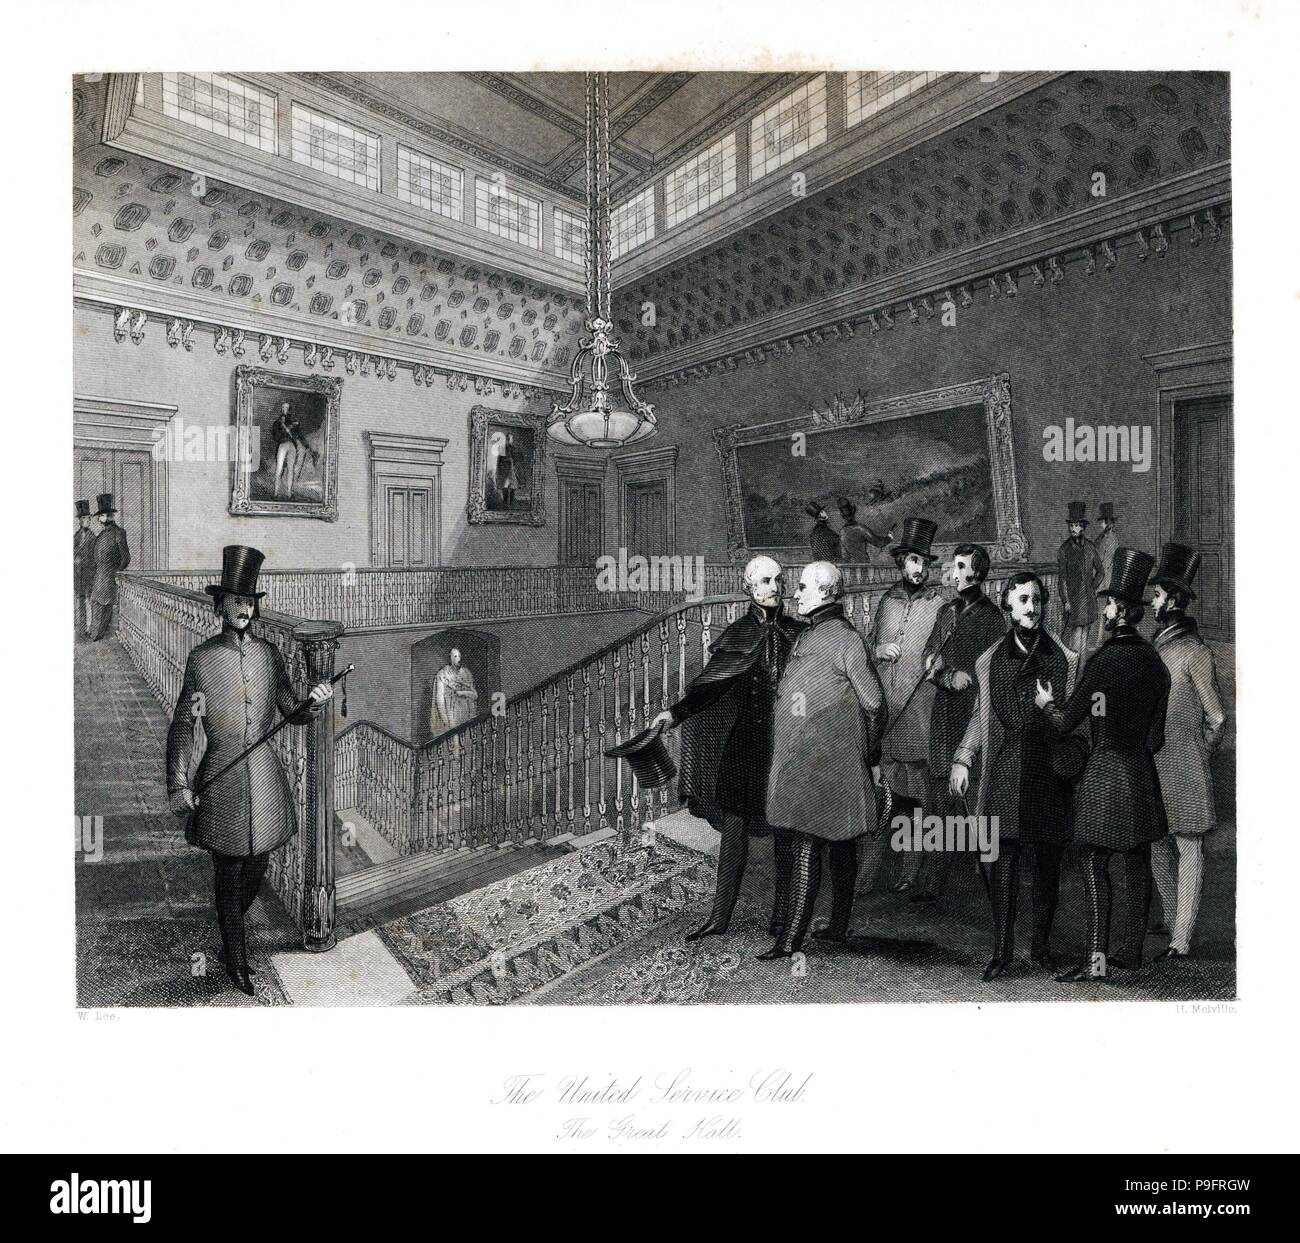 The Great Hall at the United Service Club. Steel engraving by Henry Melville after an illustration by William Lee from London Interiors, Their Costumes and Ceremonies, Joshua Mead, London, 1841. - Stock Image